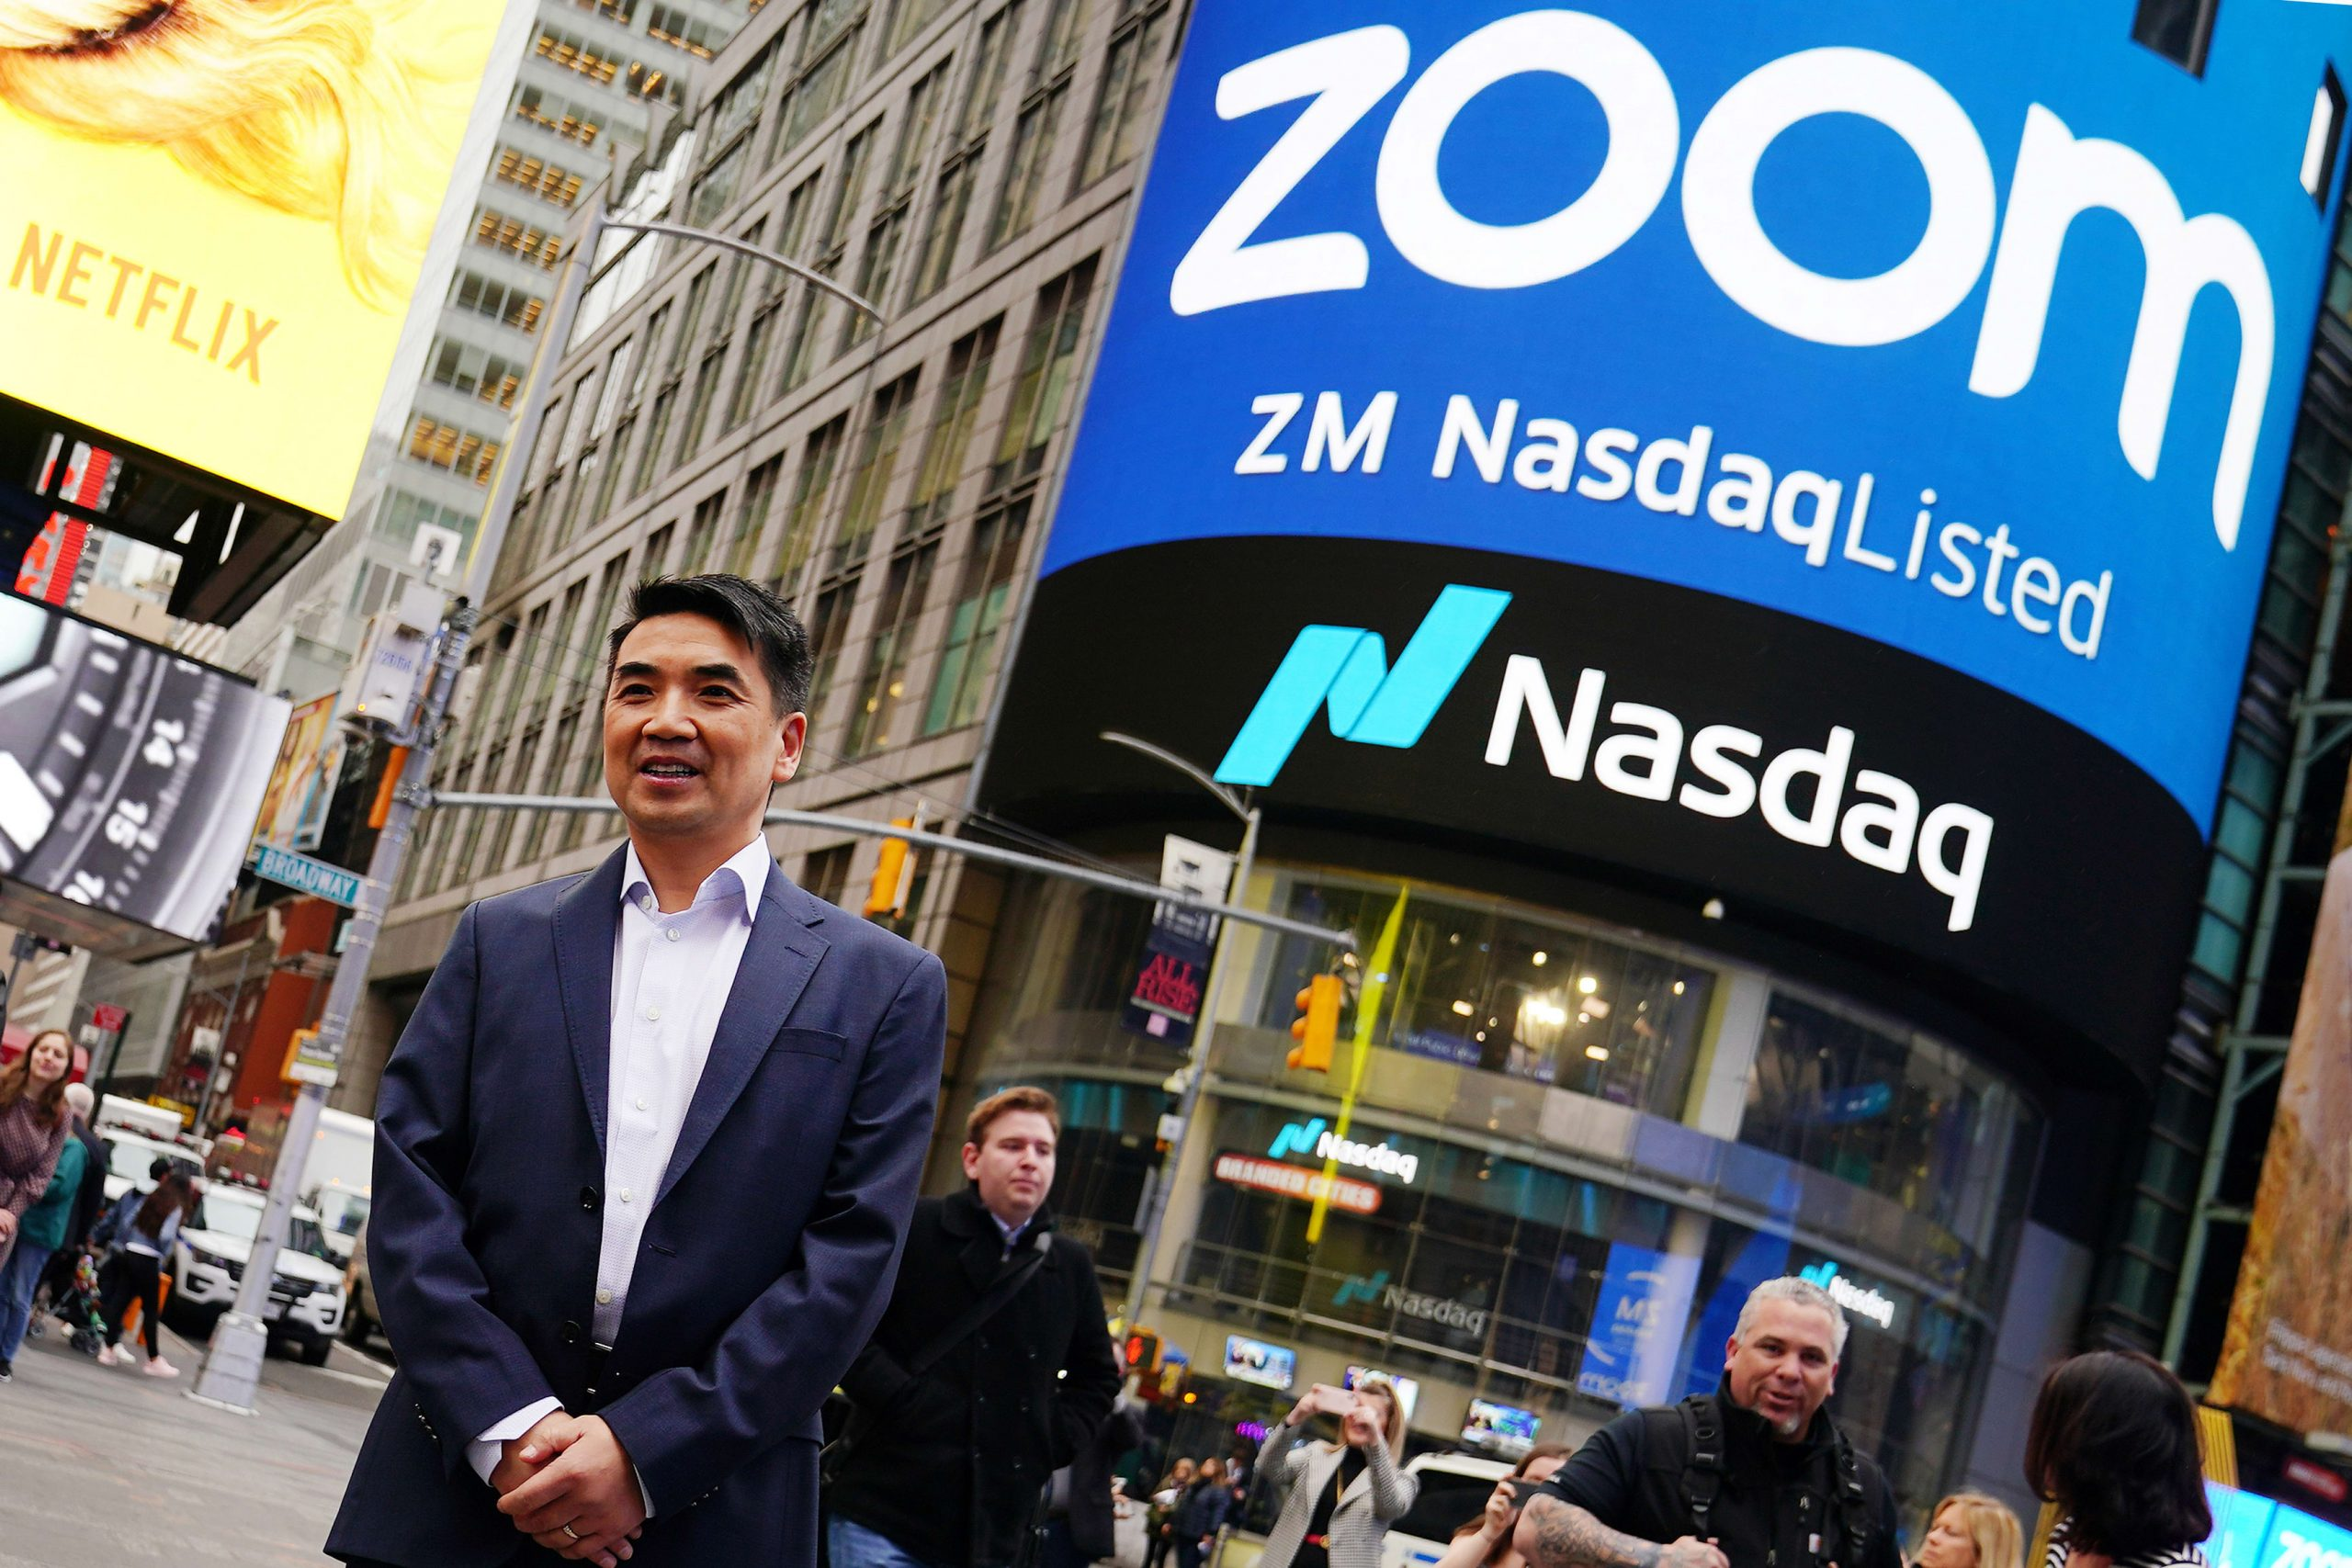 zoom's-stock-surges-41%-after-earnings-beat,-adding-over-$37-billion-in-market-cap